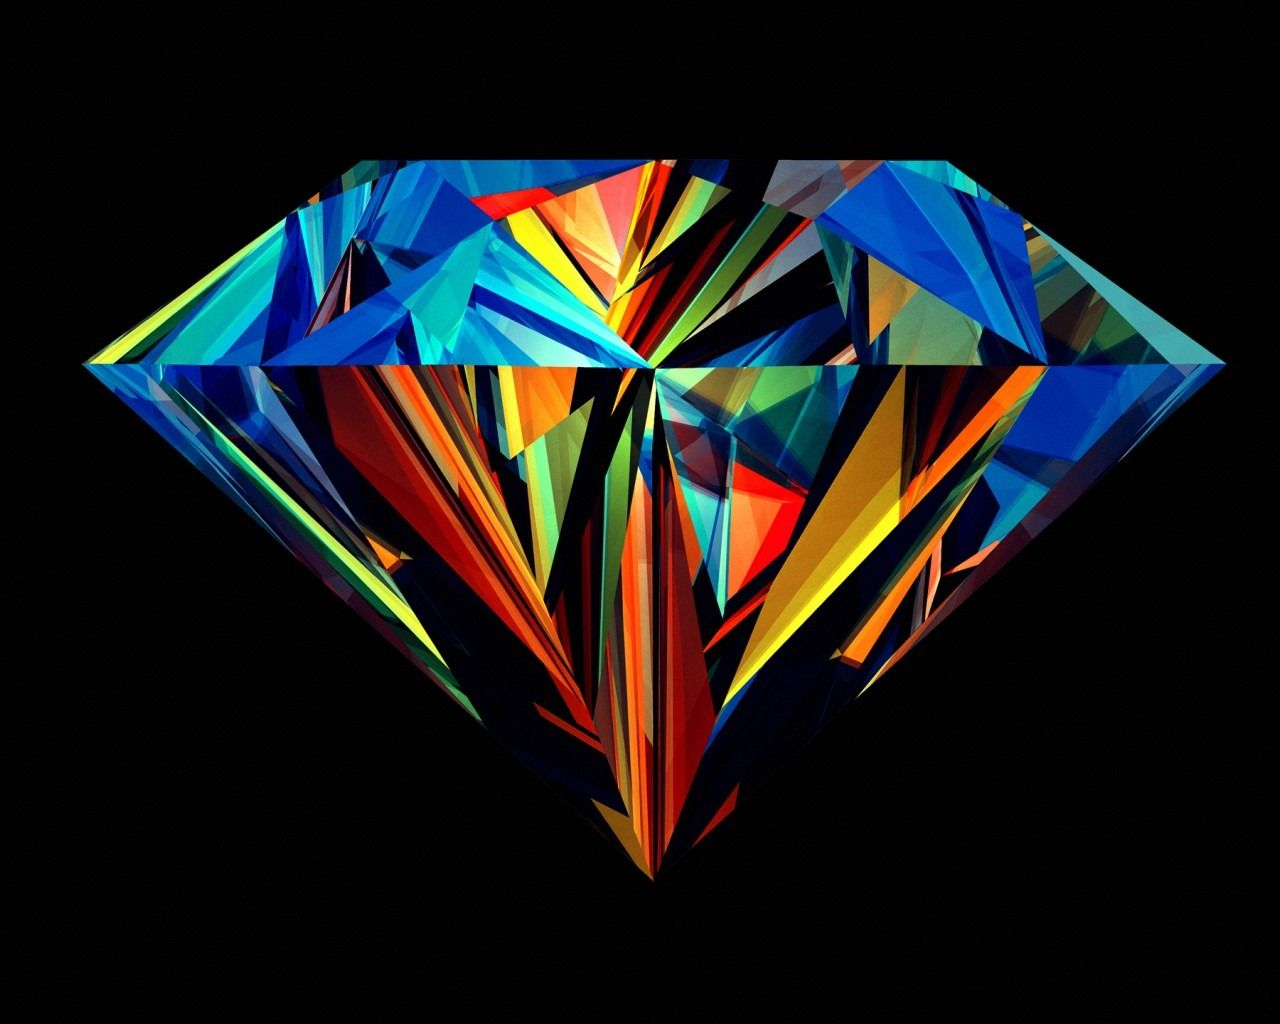 Abstract Colorful Diamond Wallpaper | HD Wallpapers Source ...